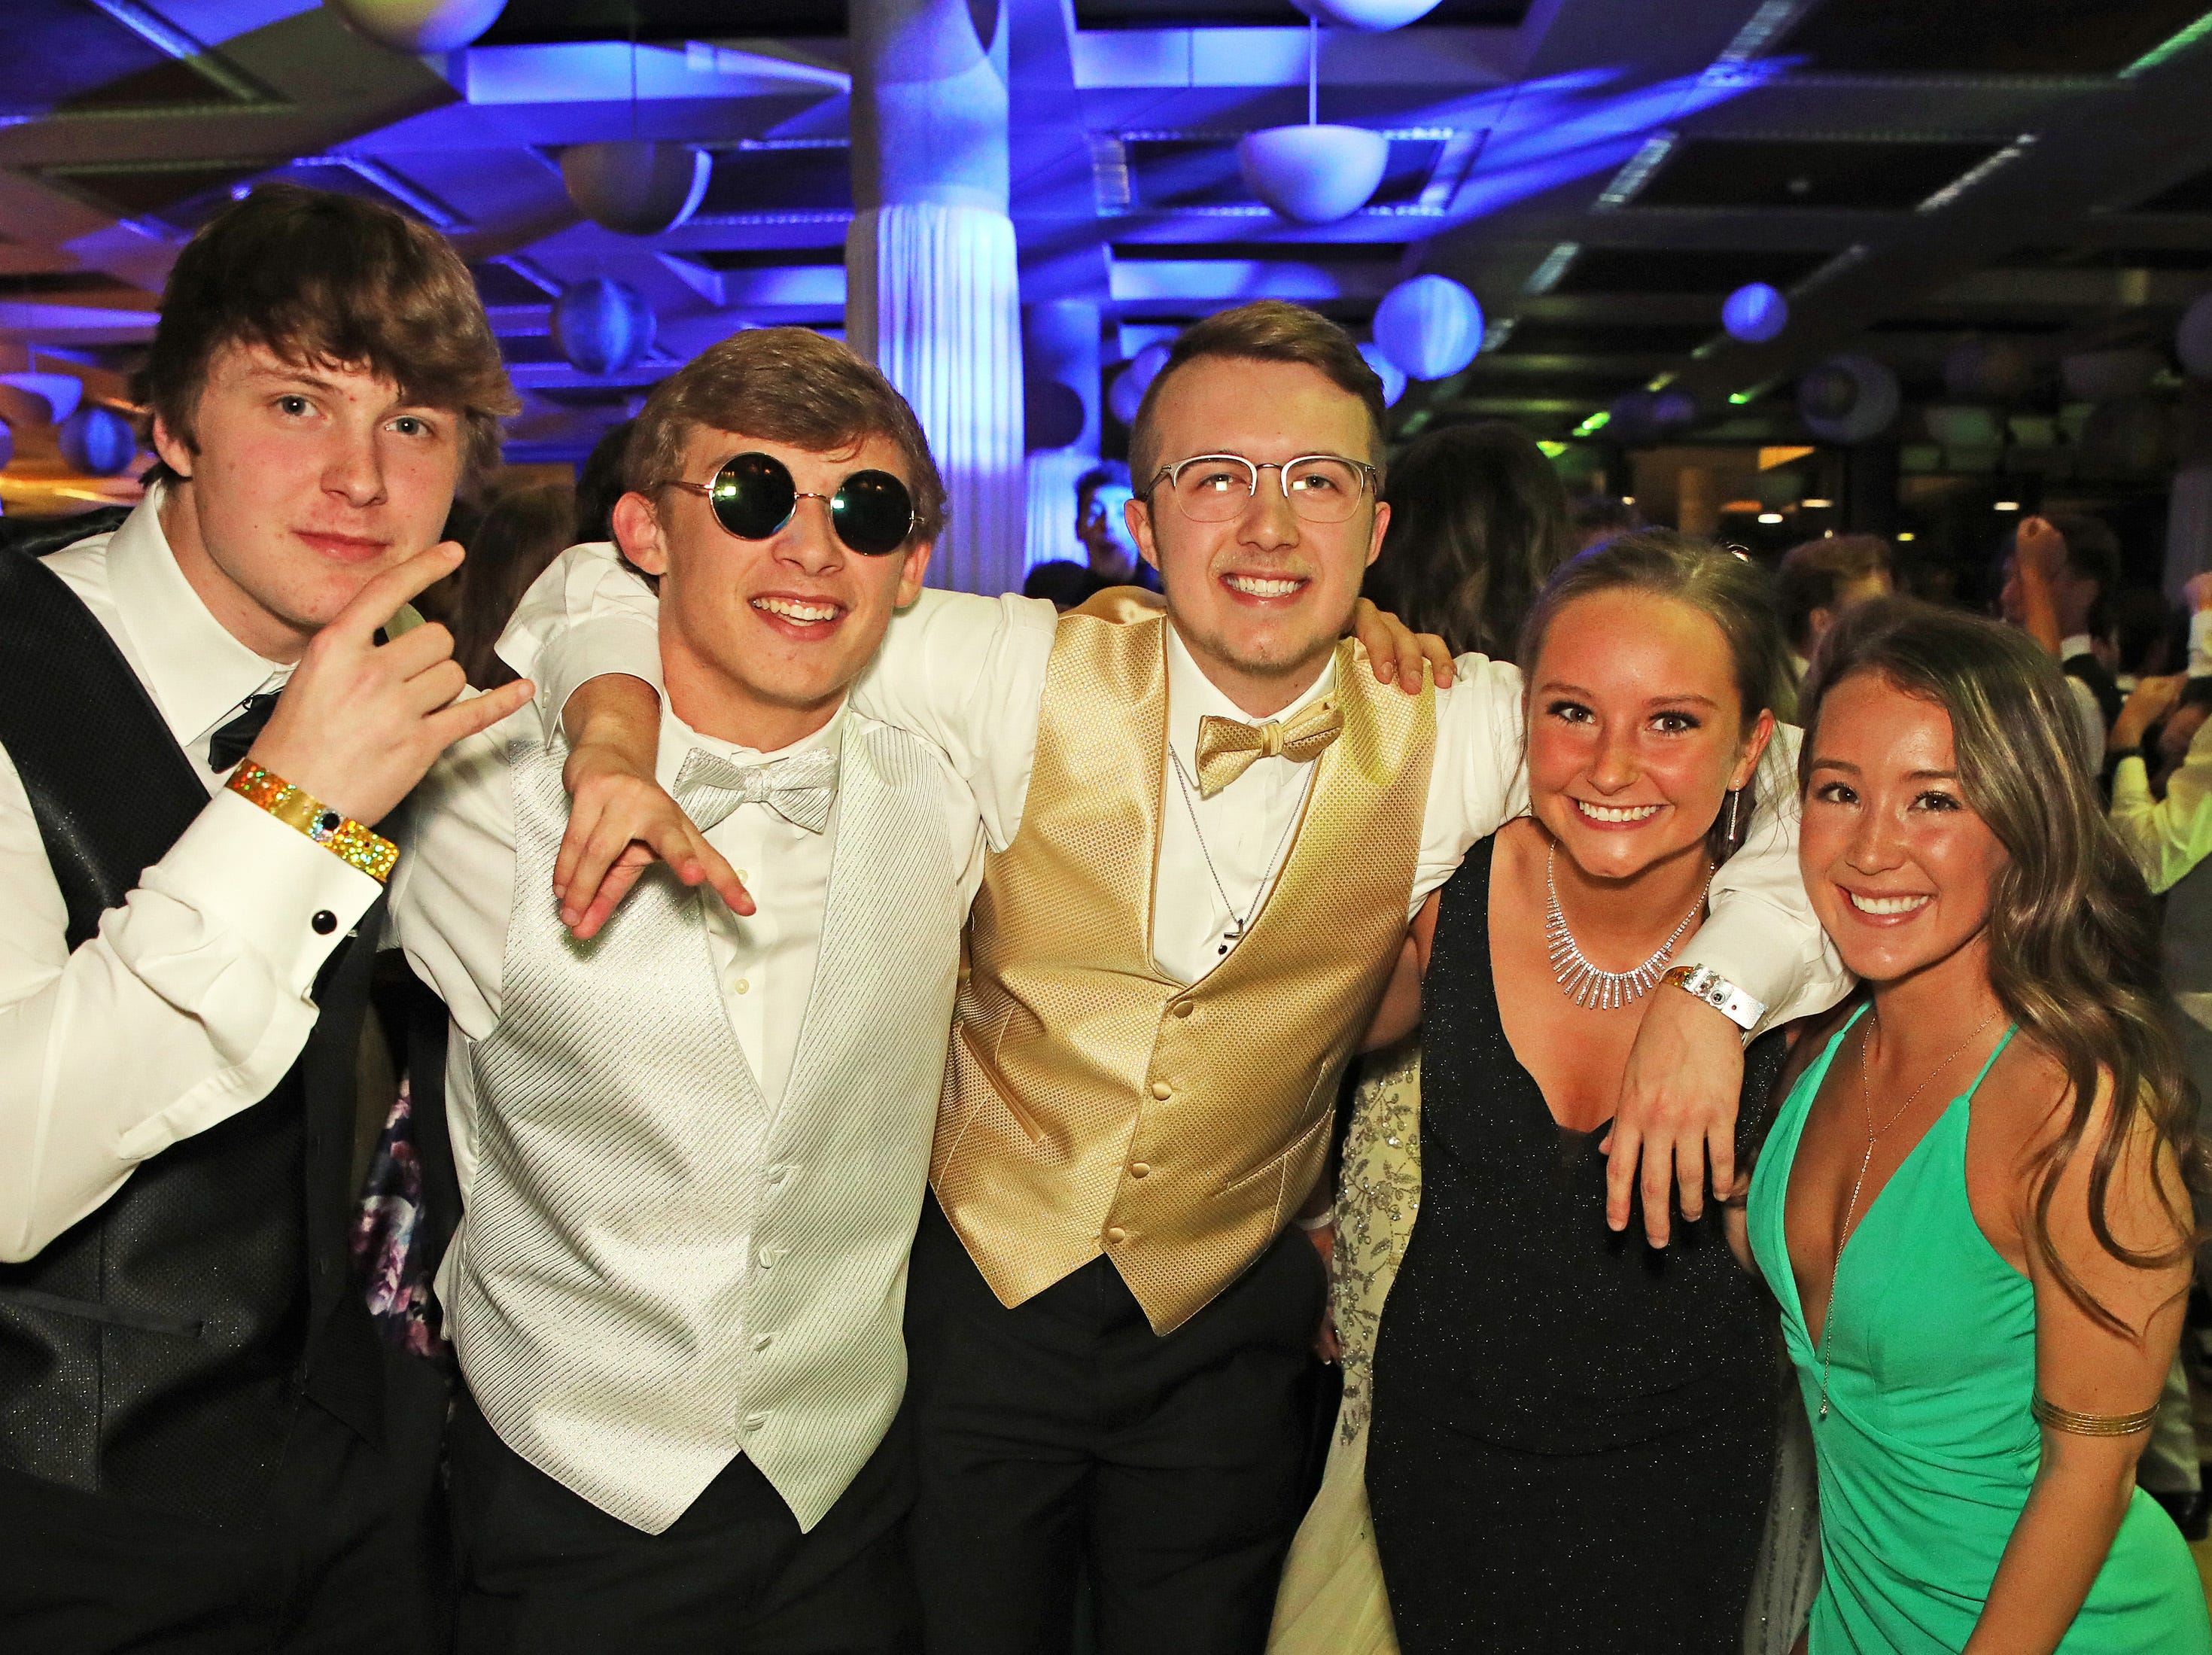 Centennial students pose for a picture during the Ankeny Centennial High School prom at the State Historical Building in Des Moines on Saturday, April 13, 2019.